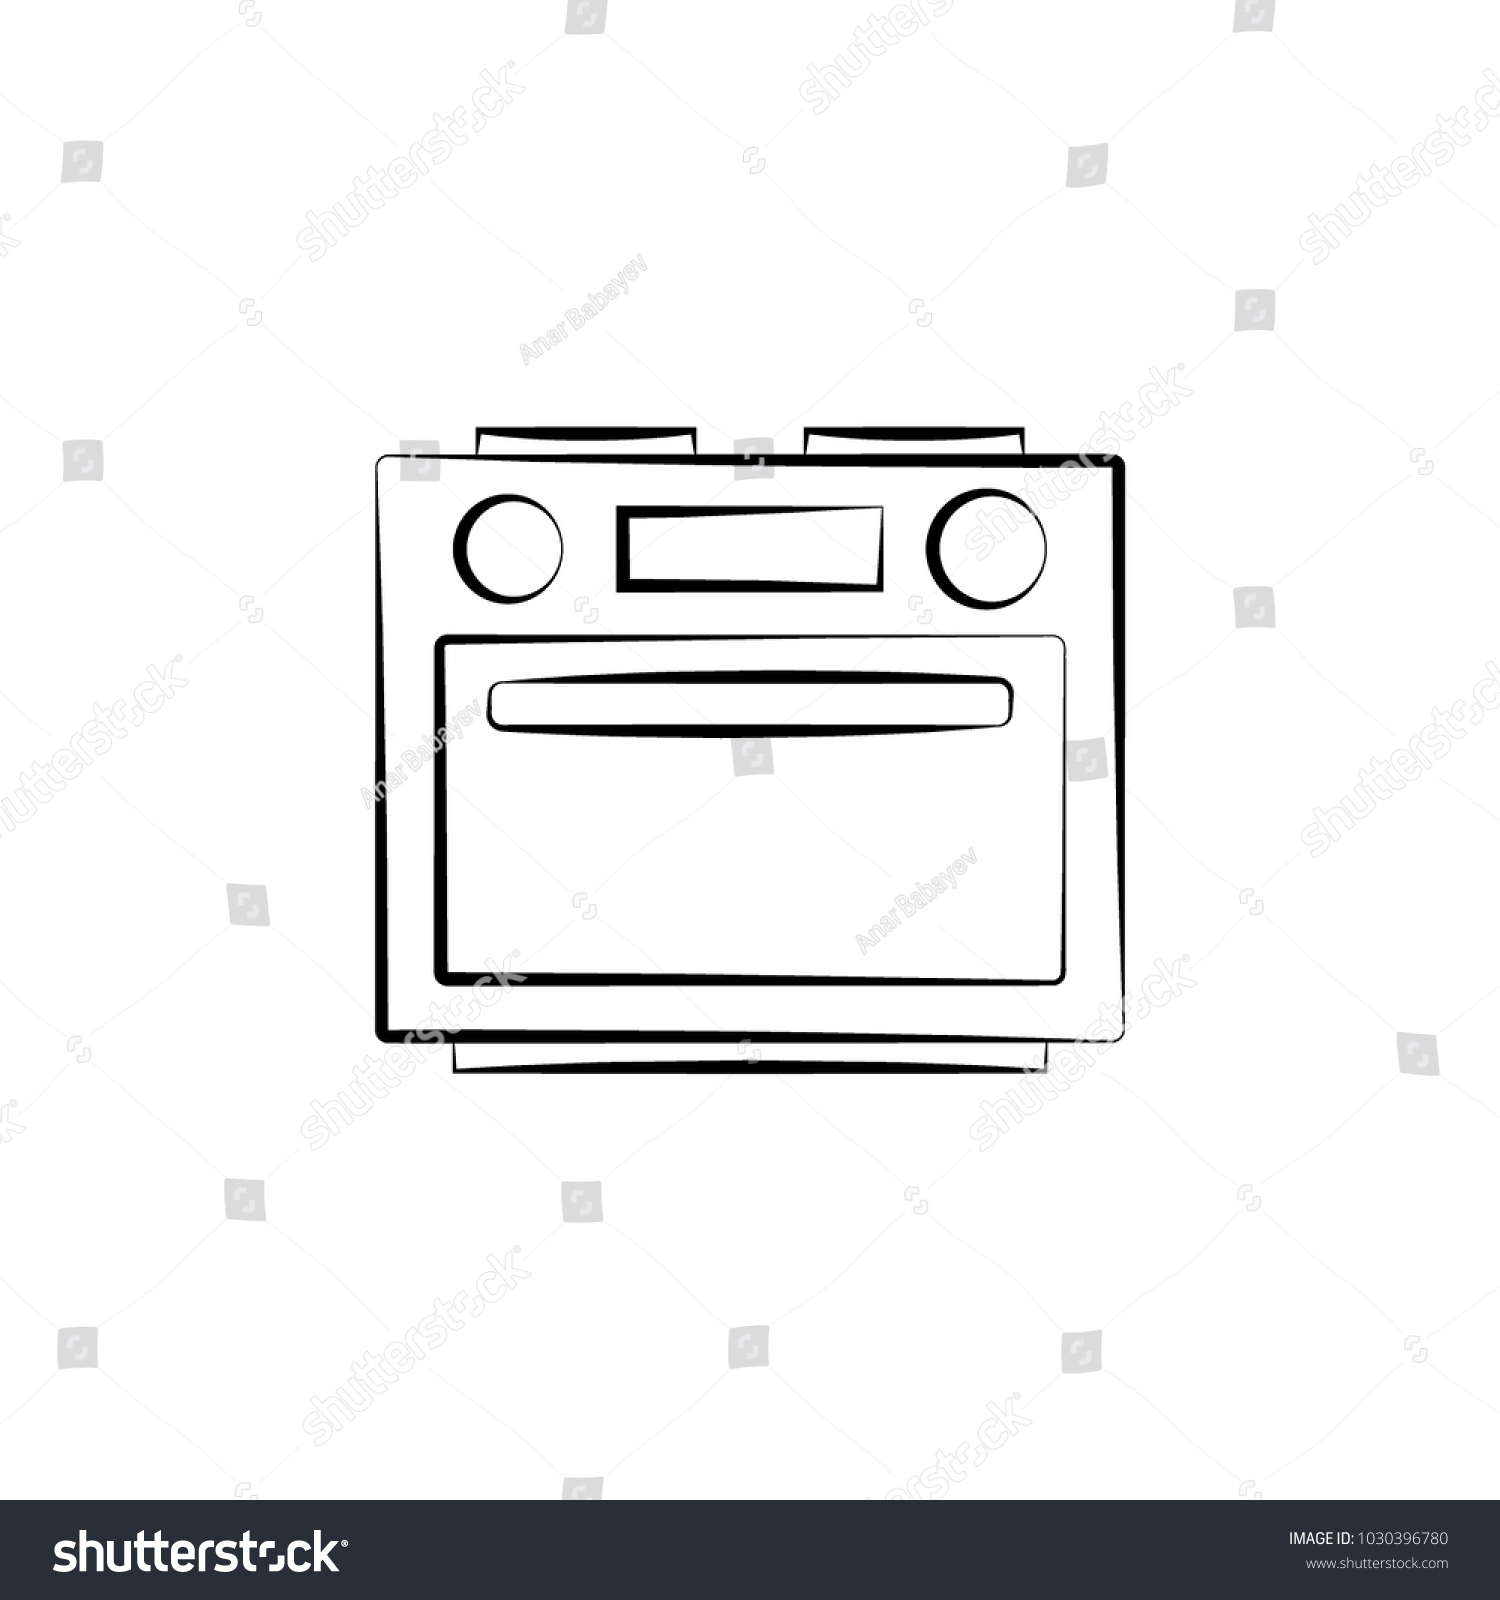 Oven Icon Element Electrical Devices Icon Stock Vector (Royalty Free